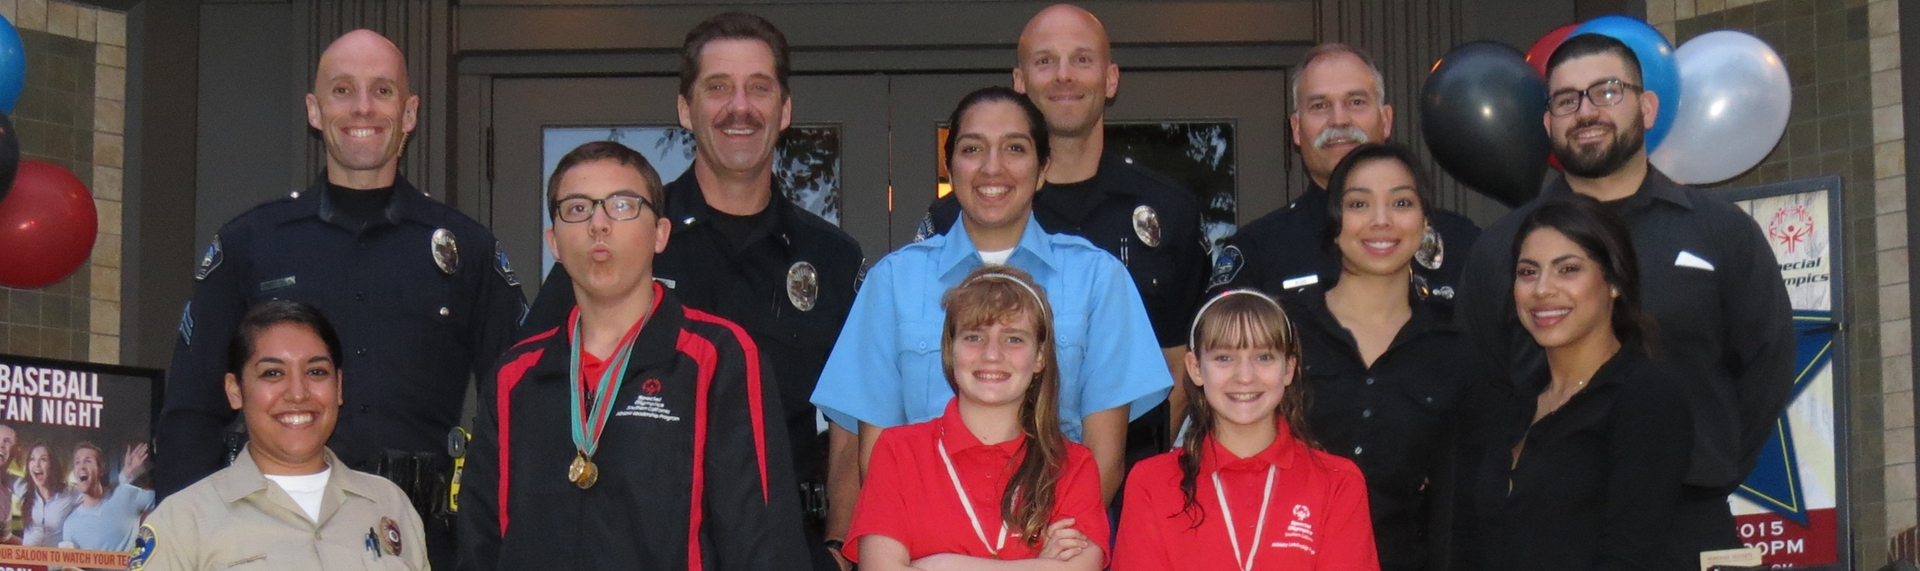 GREAT TIP-A-COP EVENT @ CLAIM JUMPER TO SUPPORT SPECIAL OLYMPICS!